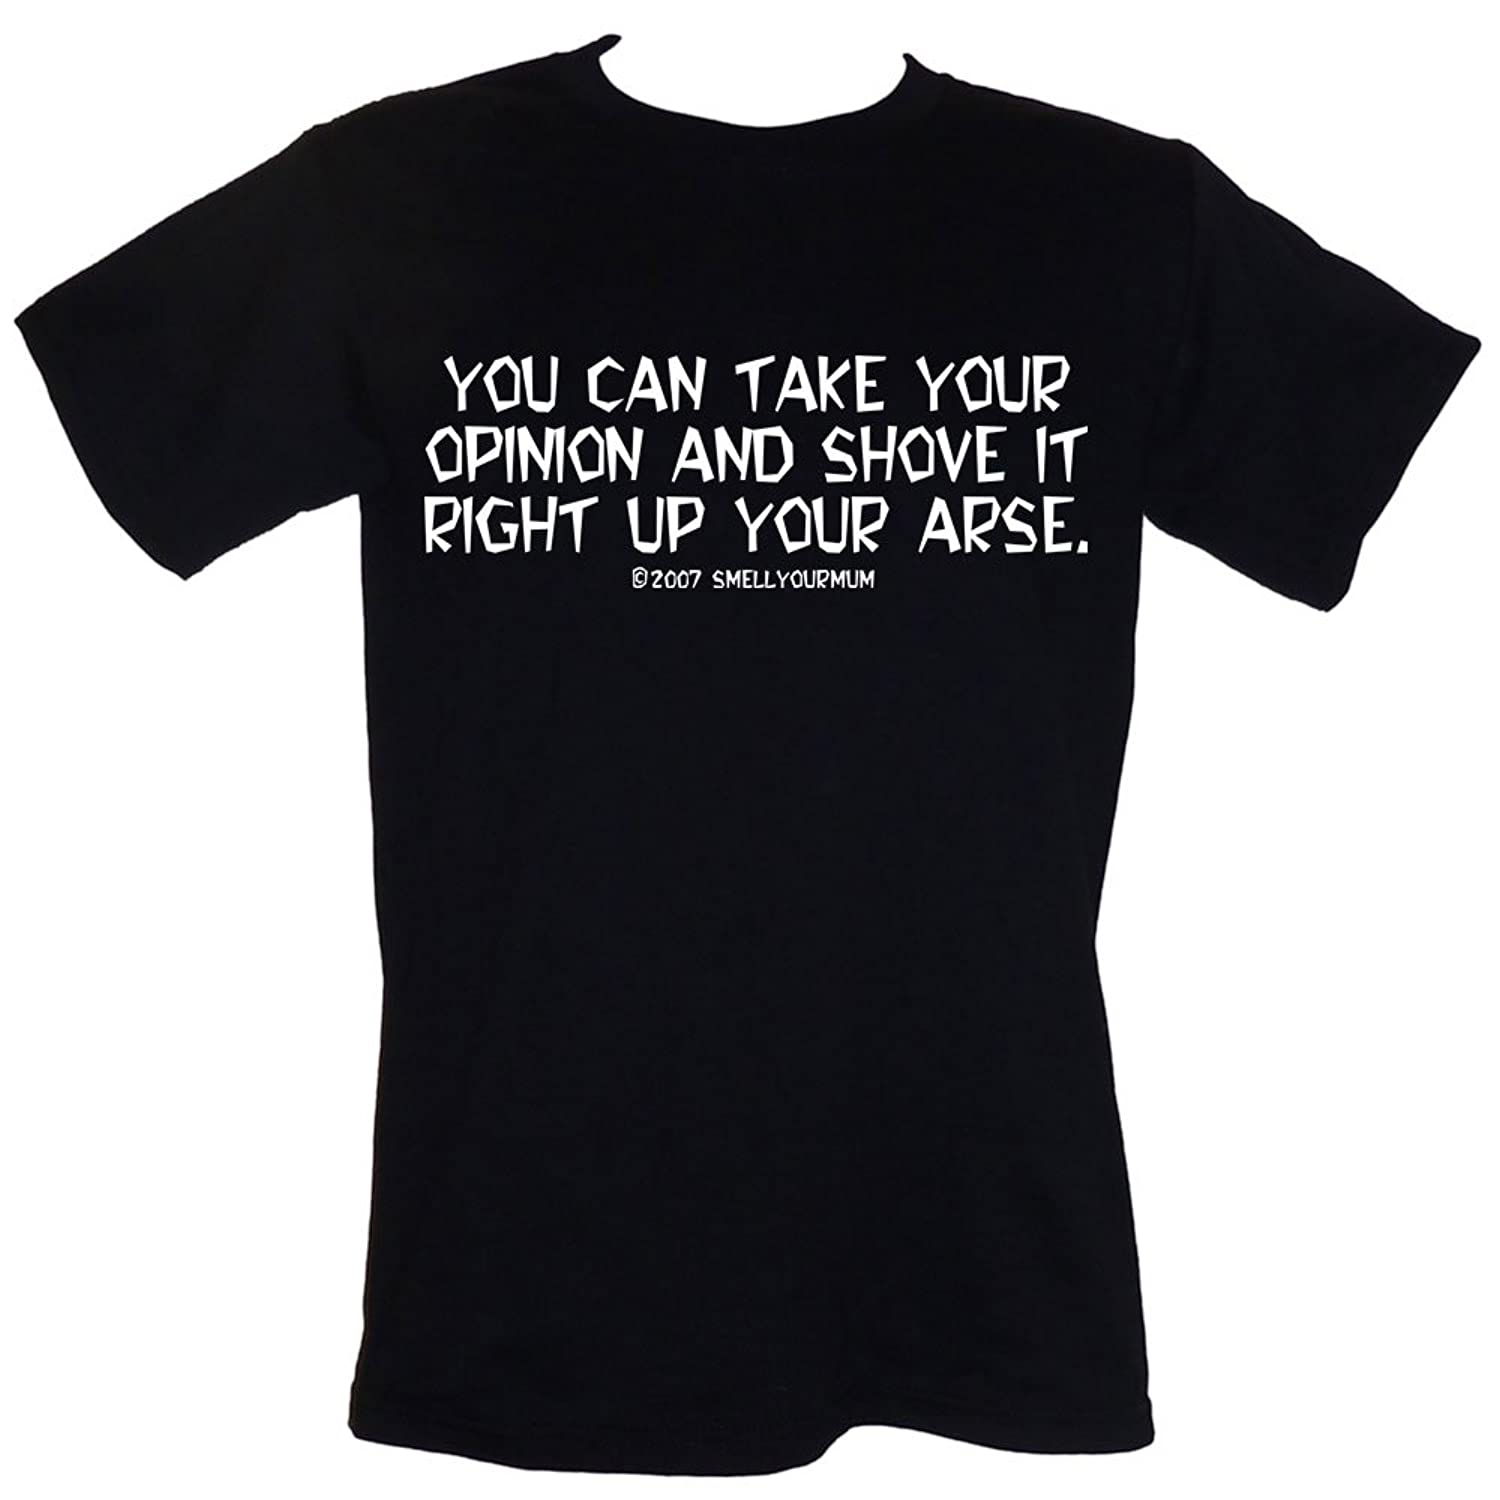 acac3584 You Can Take Your Opinion And Shove It Right Up Your Arse T-SHIRT Size  S-4XL (rude offensive alternative goth punk rebel metalhead slogan) (xl):  ...